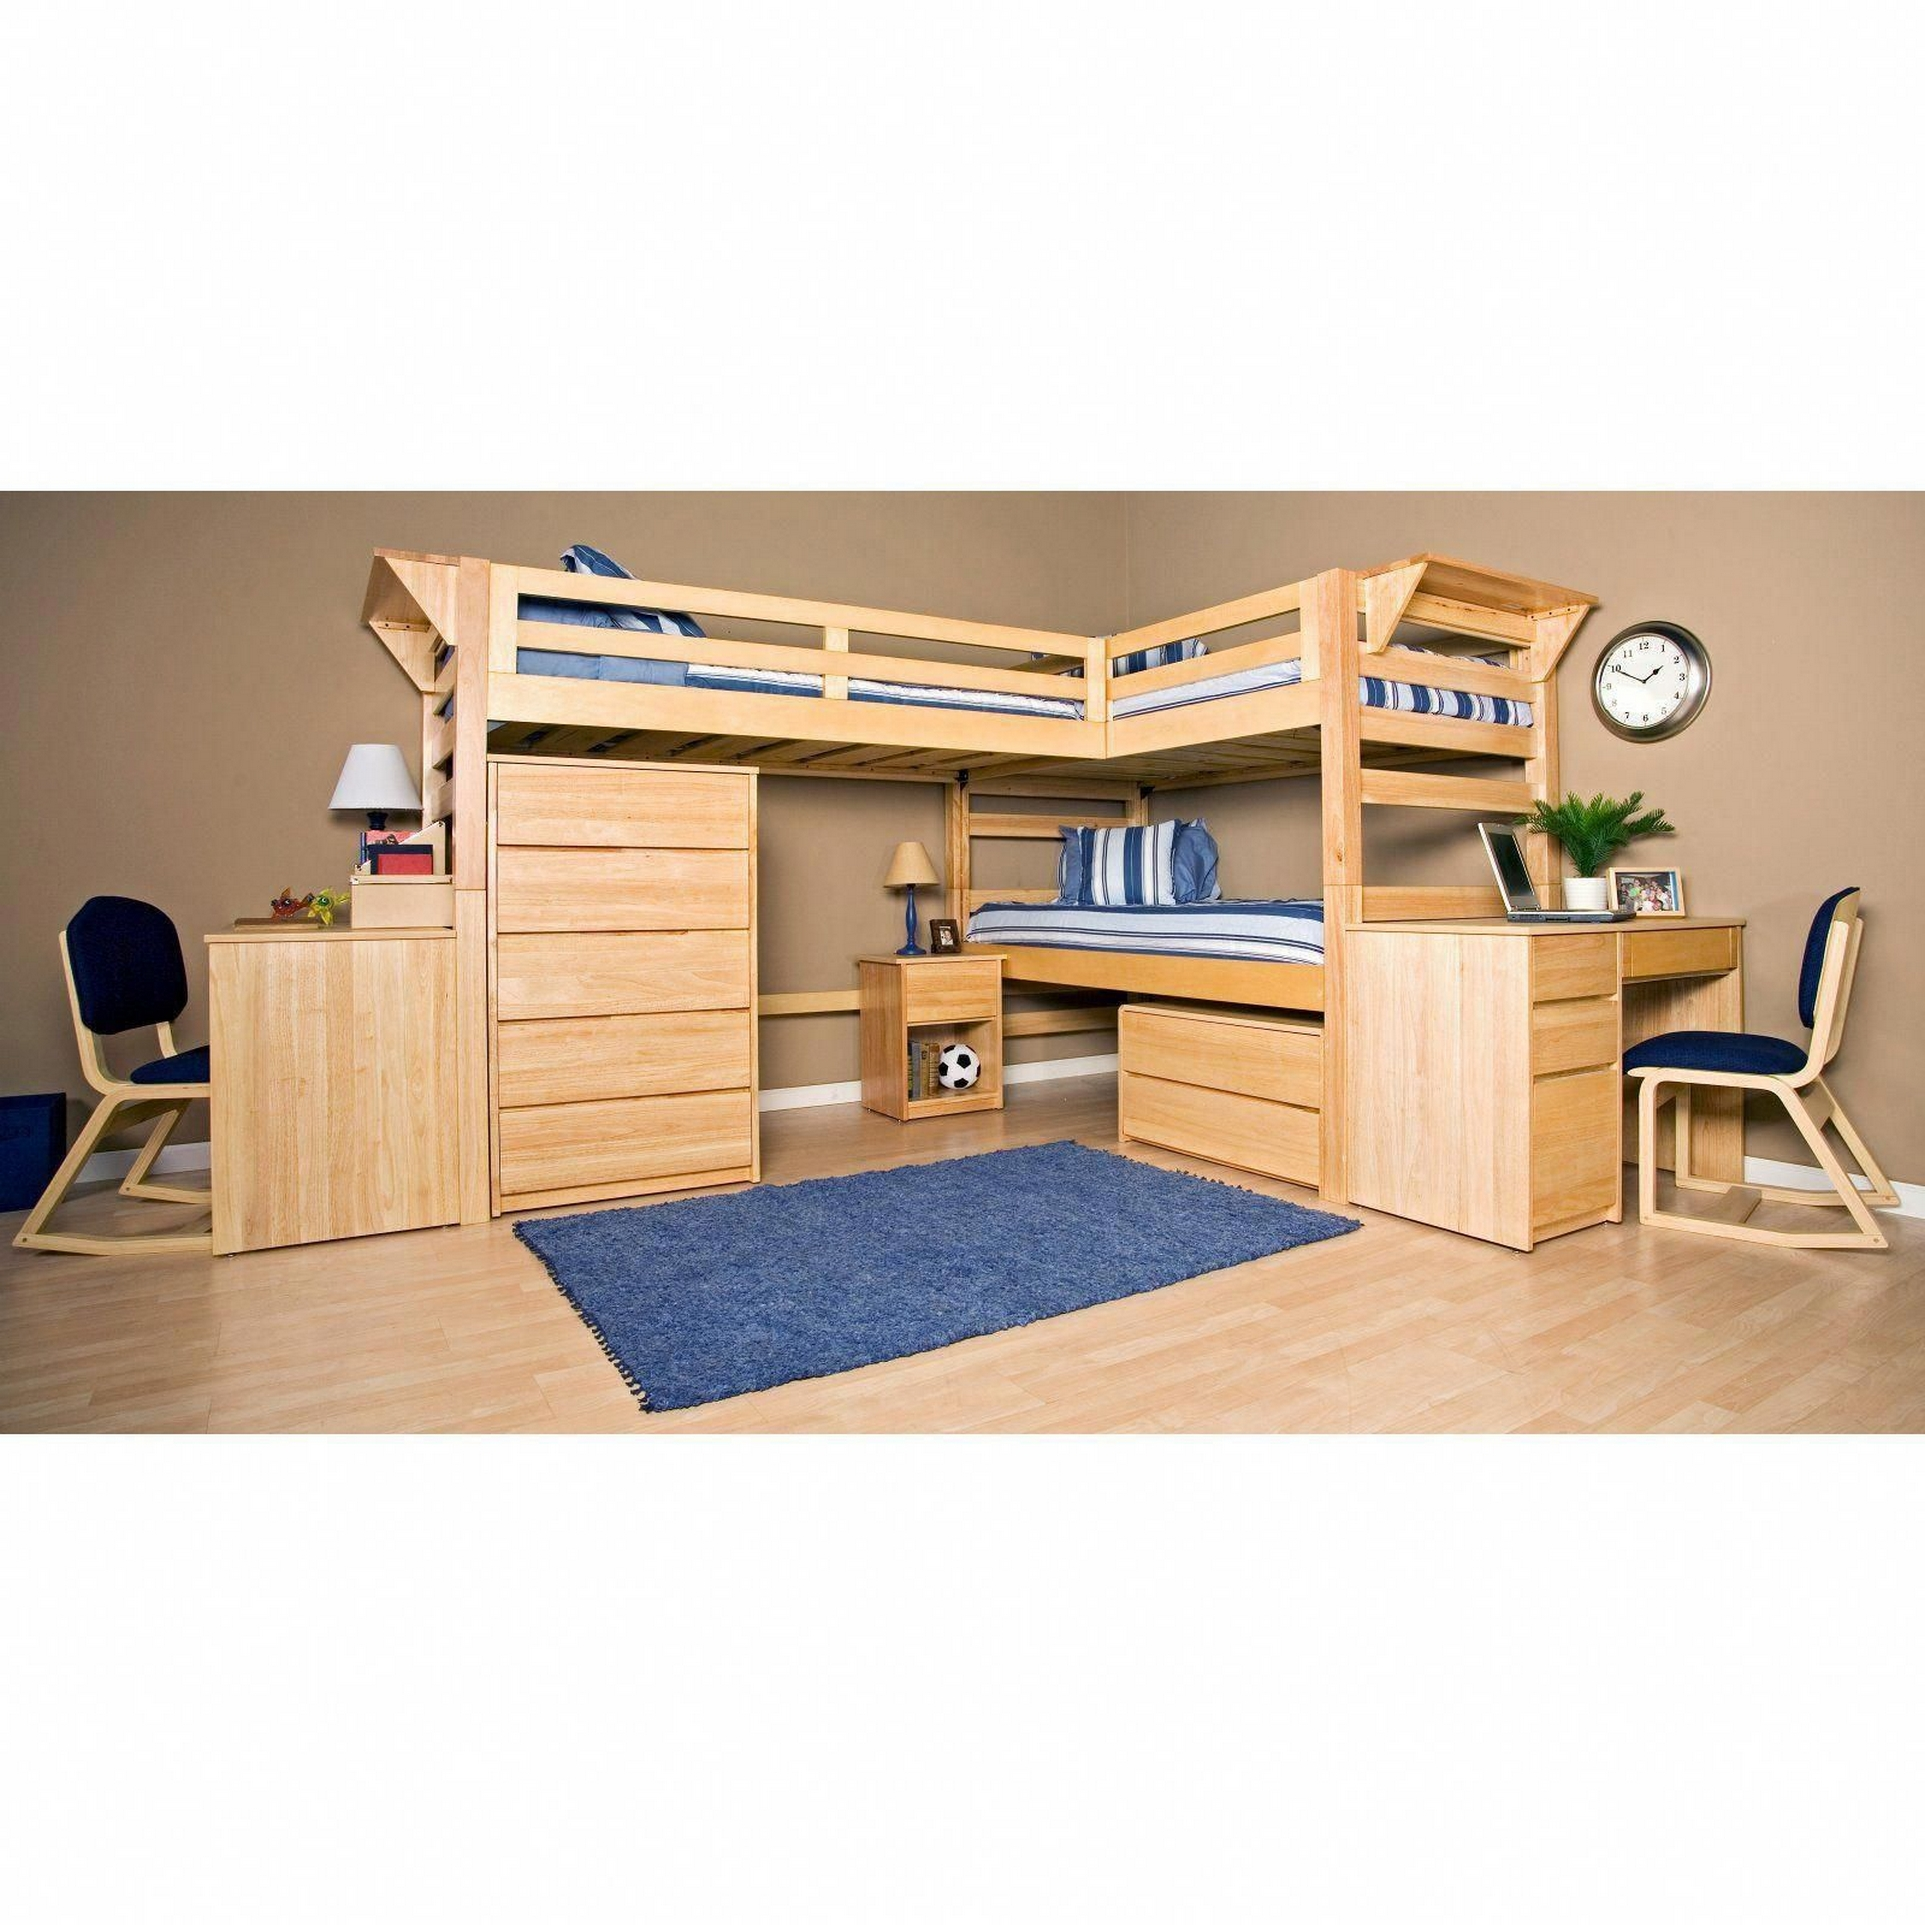 30+ Bunk Beds Design Ideas With Desk Areas Help To Make Compact Bedrooms Bigger 26